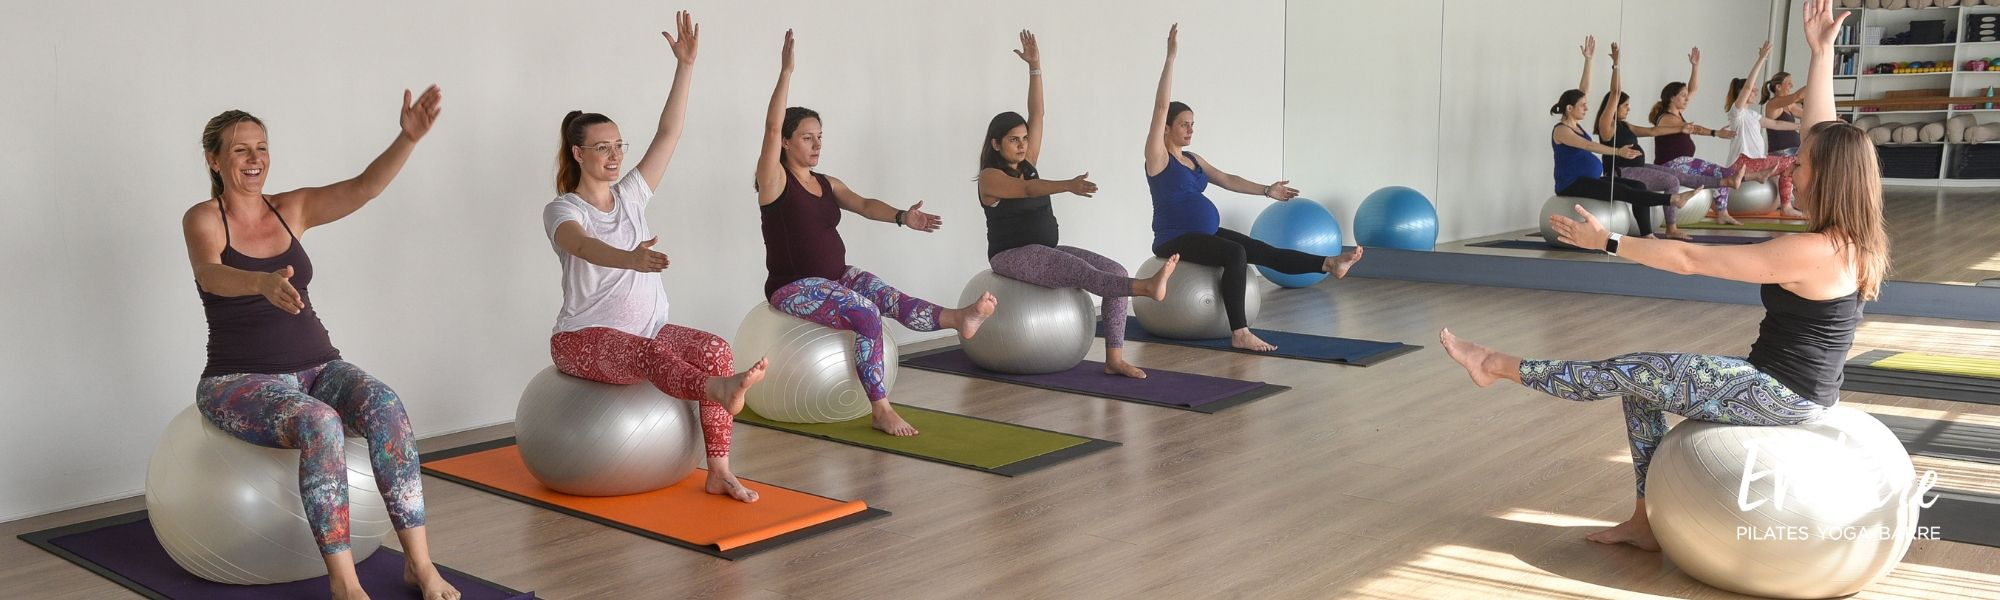 Pilates for back pain and pelvic floor strength during pregnancy at Evolvere in Lane Cove Sydney